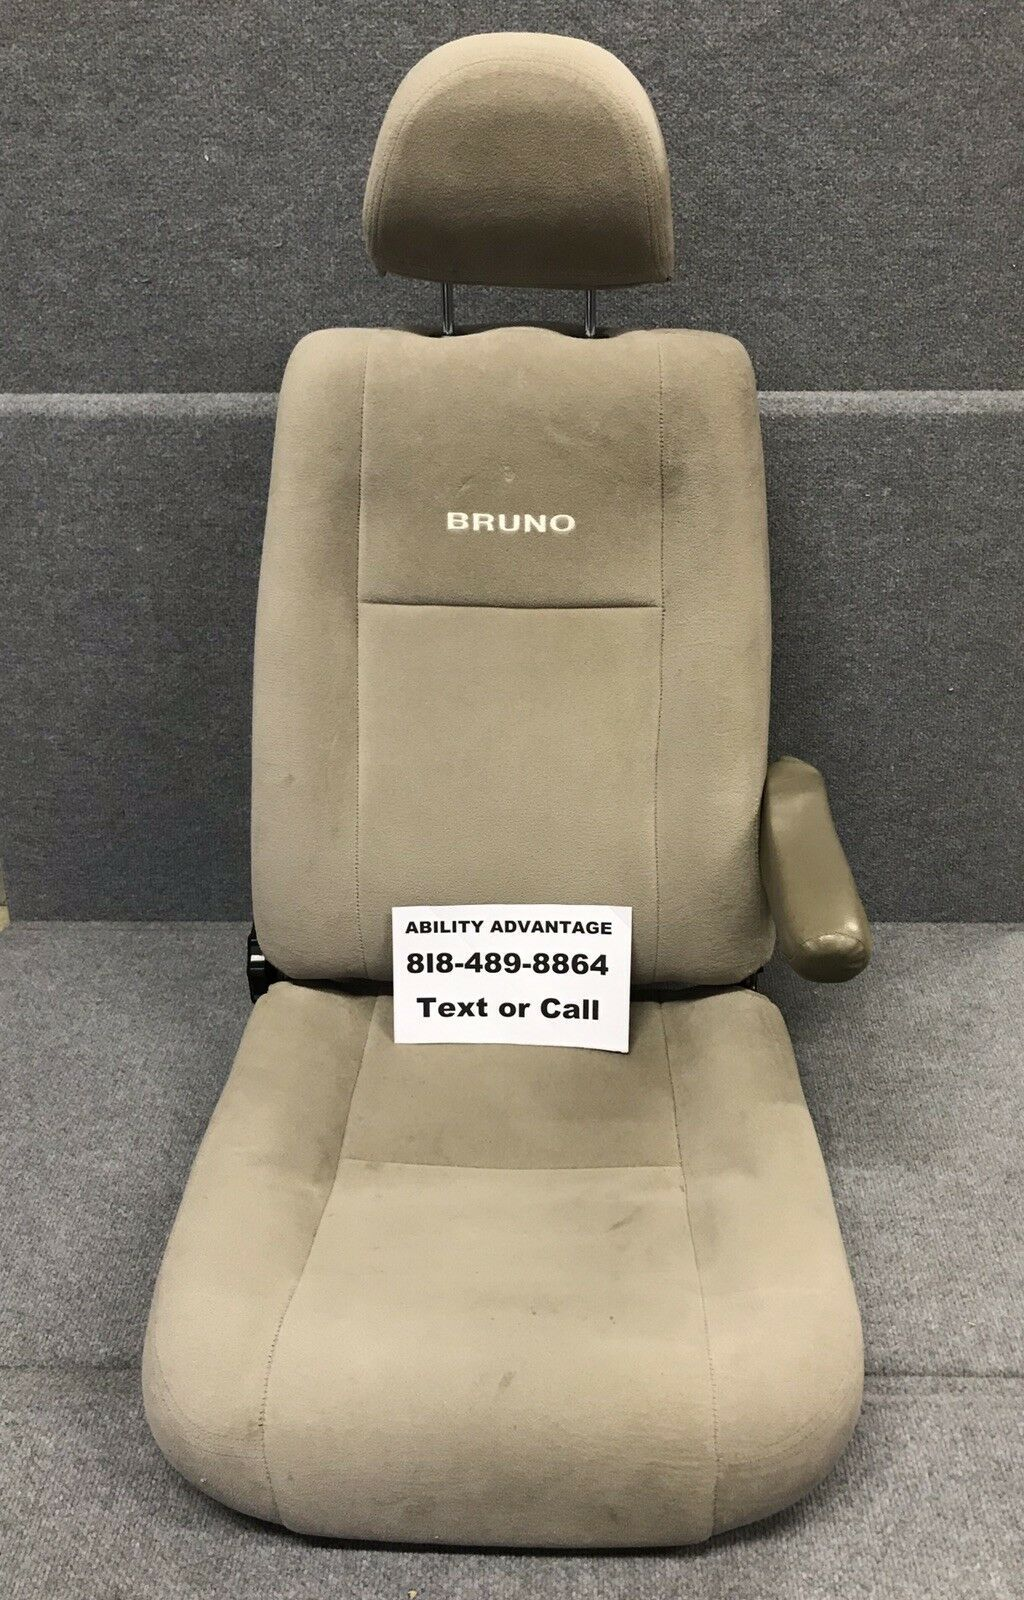 SEAT ONLY for your BRUNO VALET PLUS, VALET, TURNY and